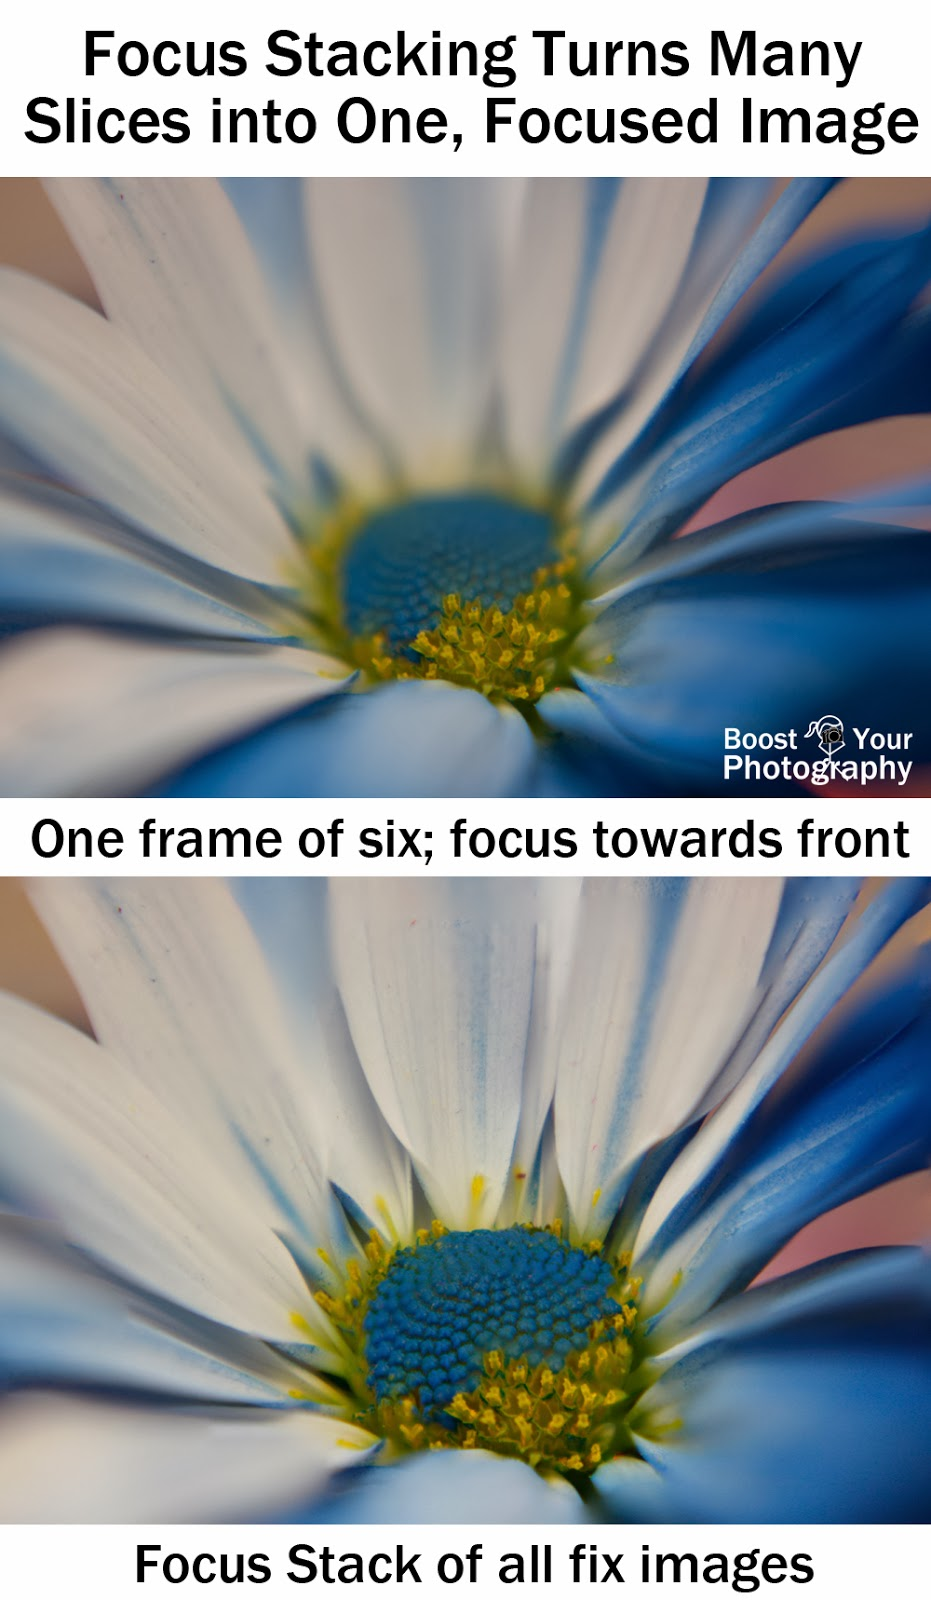 Focus Stacking Increases Depth of Field in Macro | Boost Your Photography